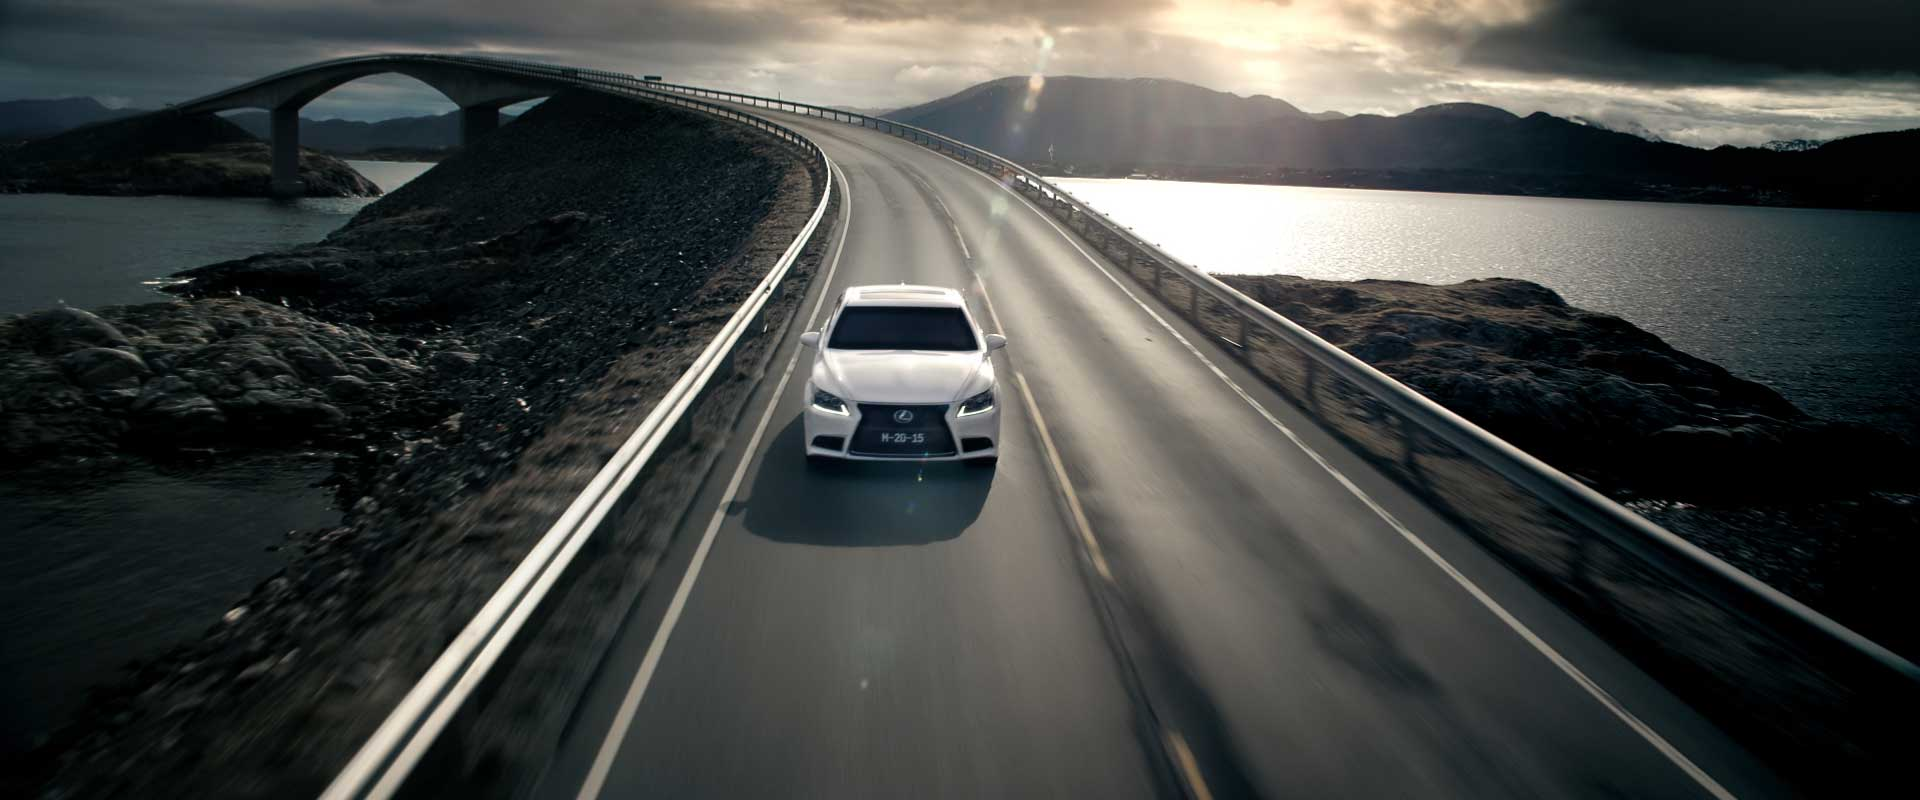 Car on countryroad. Still from Lexus Commercial.